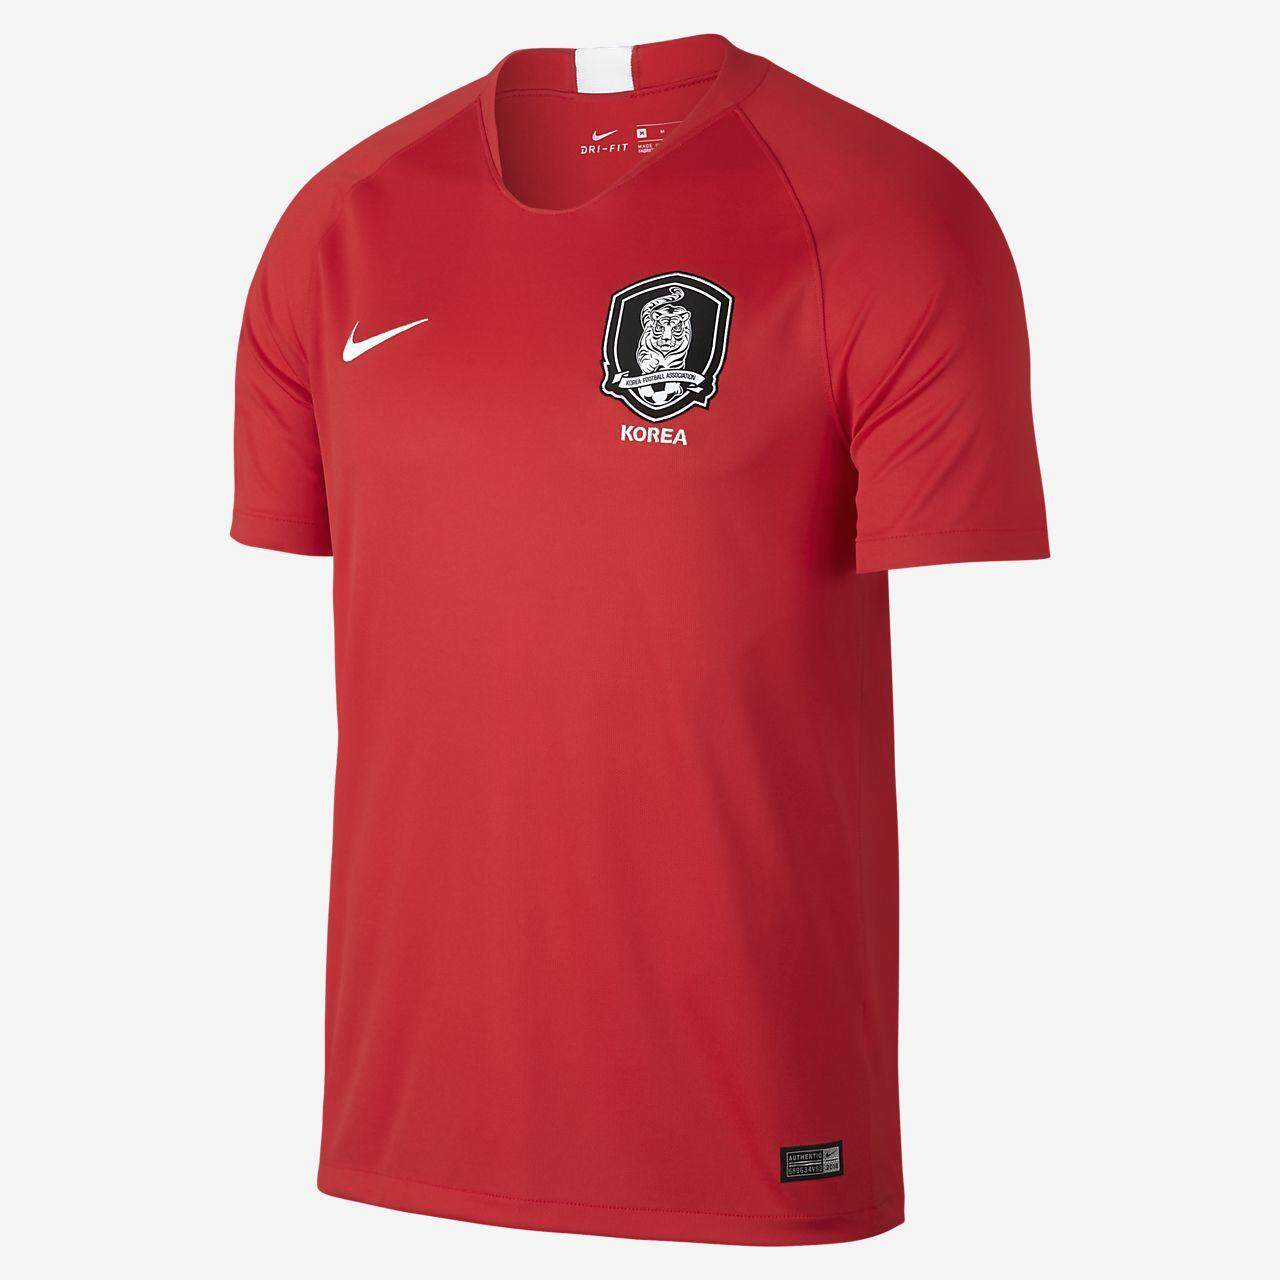 Mens Football Jersey Buy At Best Price In Baju Bola Grade Ori Manchester City Away 2019 Malaysia